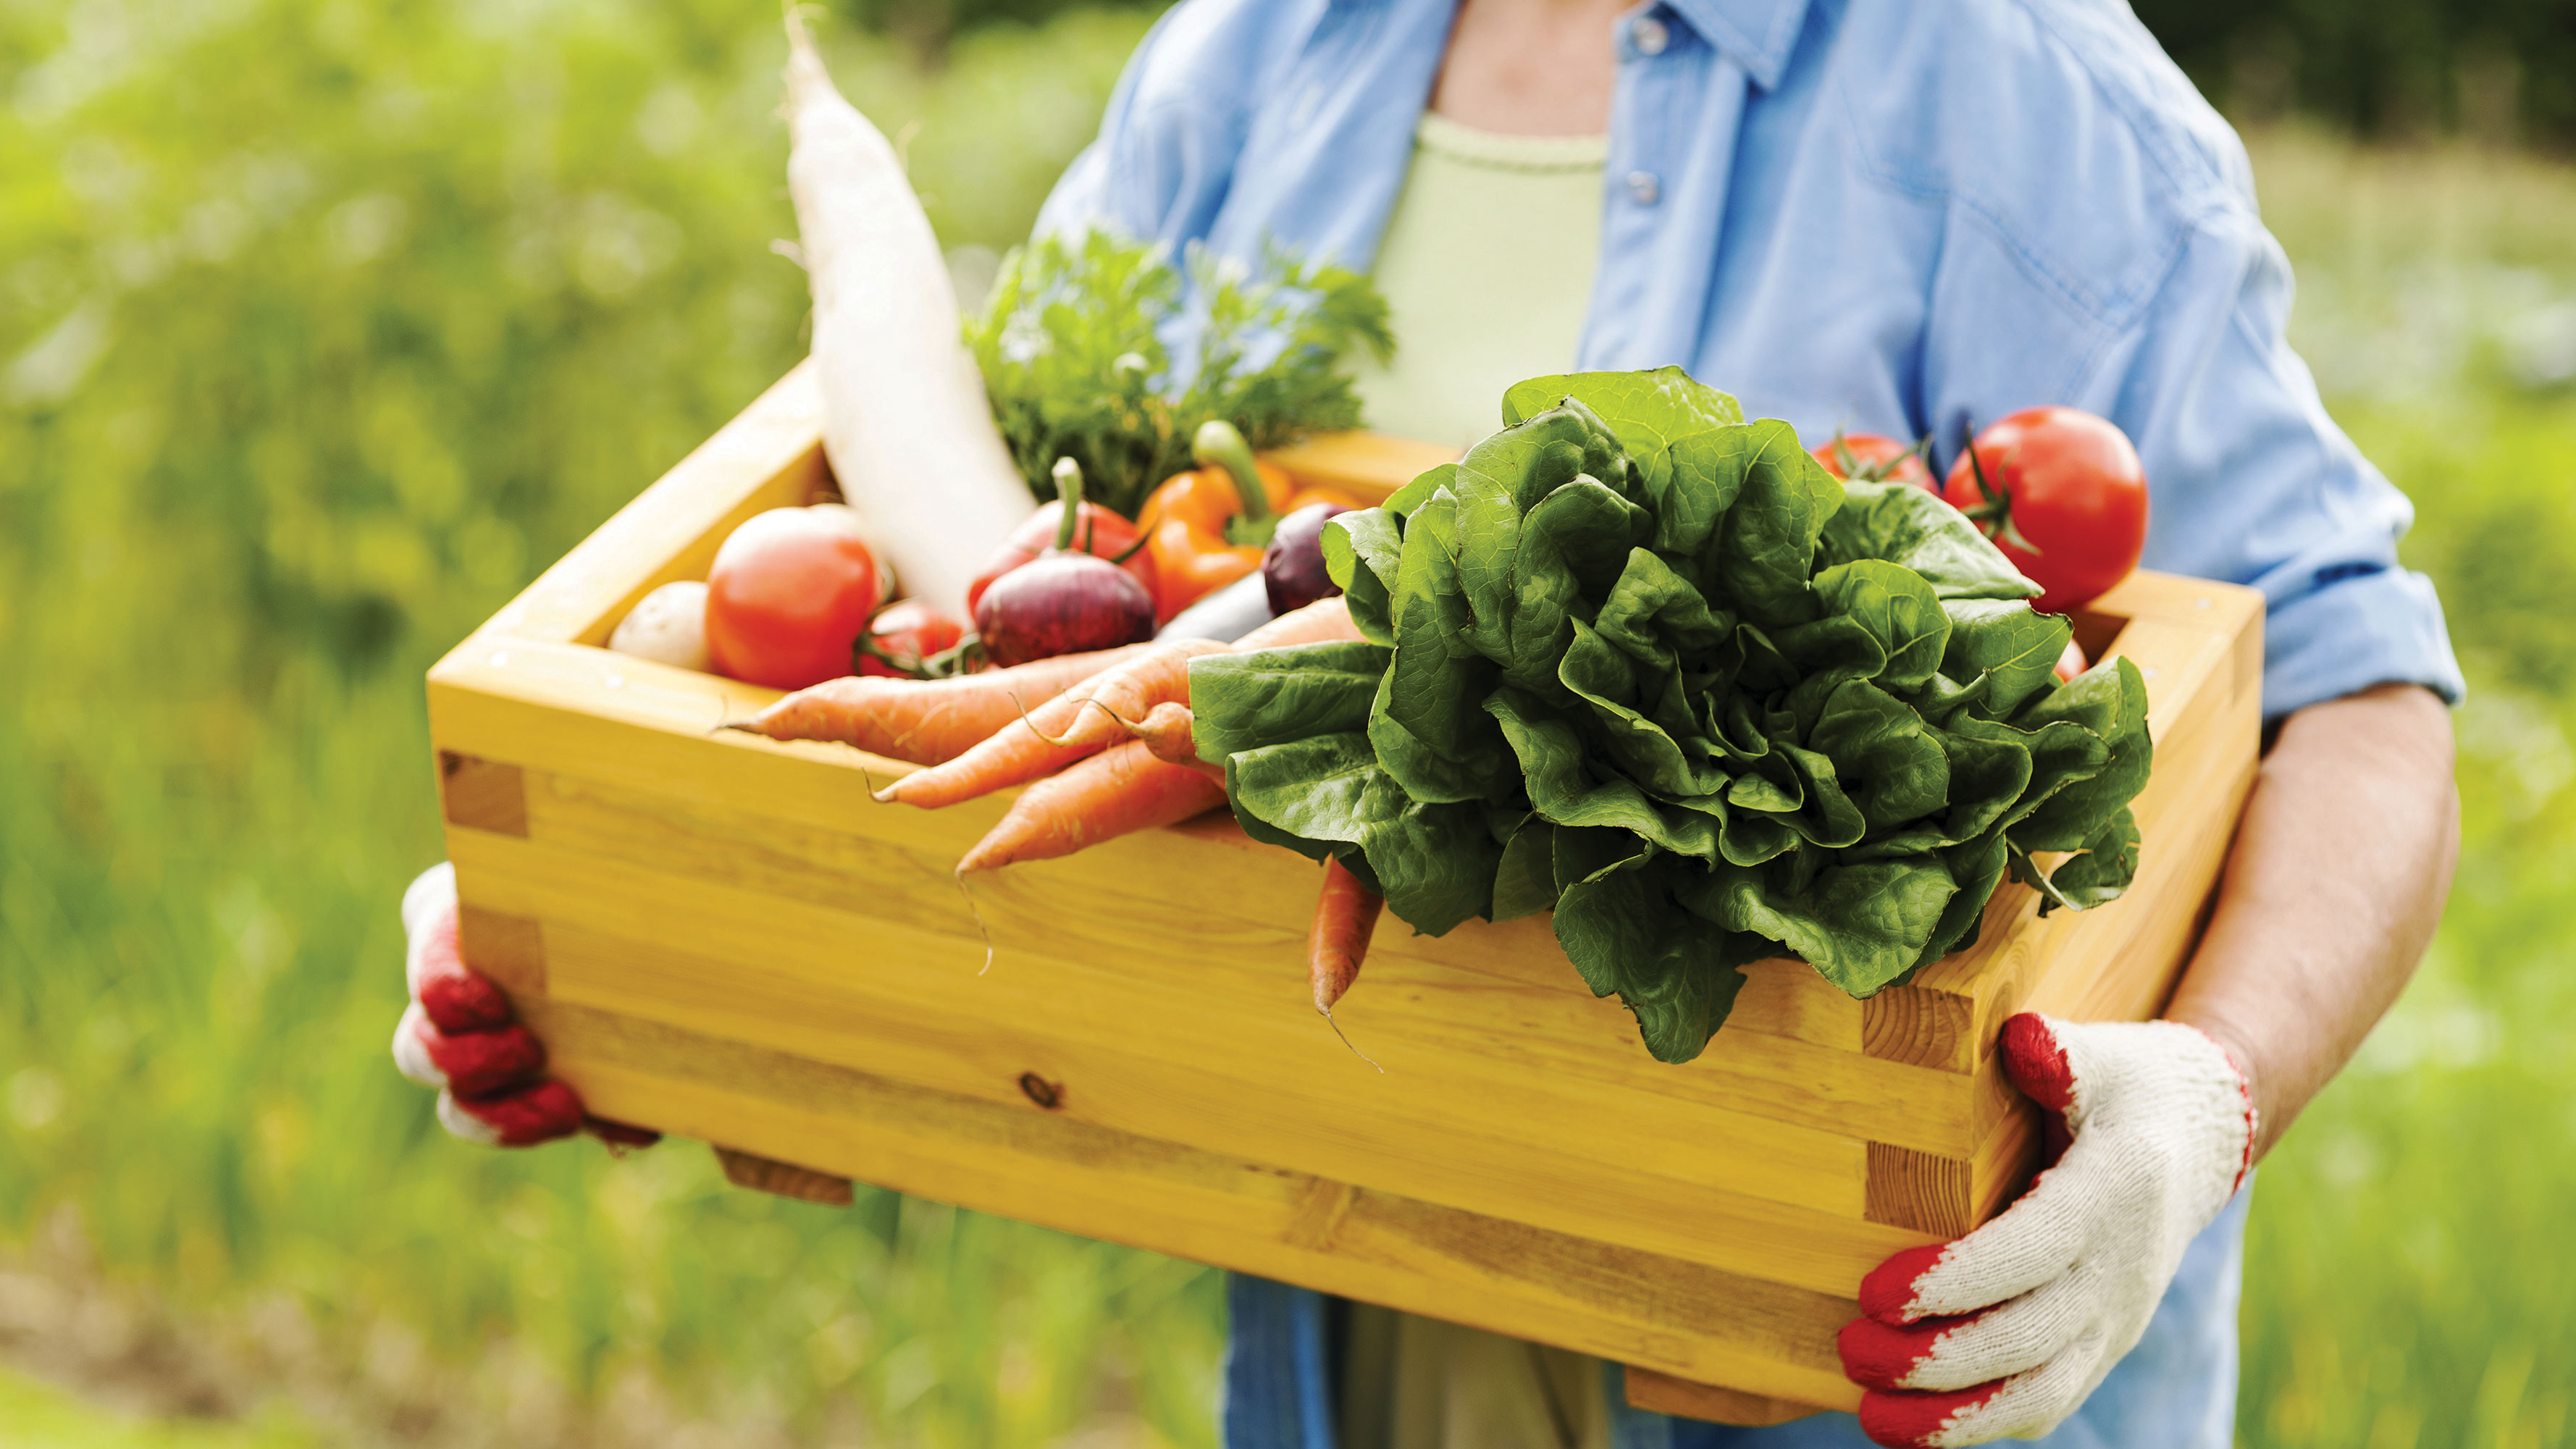 Woman holding a wooden basket of fresh produce filled to the top.